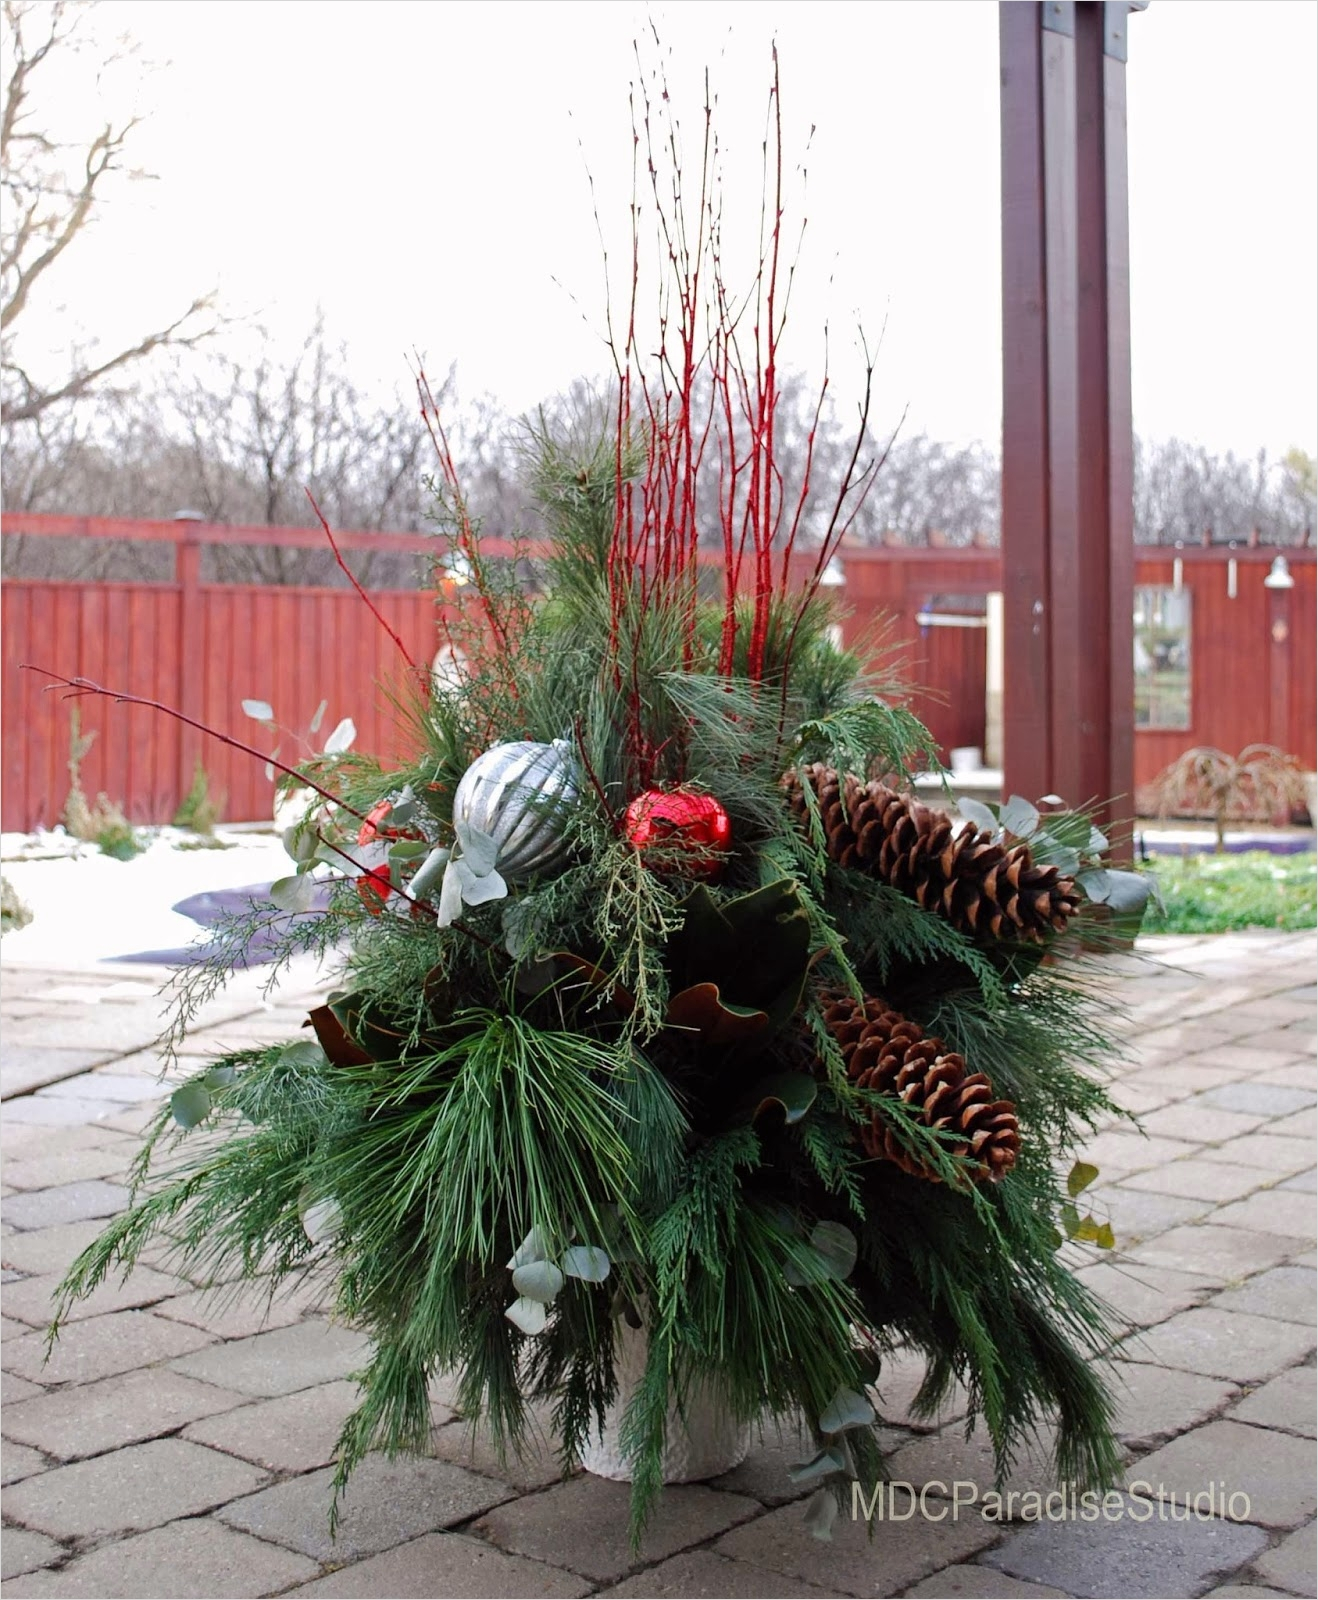 42 Beautiful Christmas Outdoor Pot Decorations Ideas 87 Paradise Floral Studio Decorating for the Holidays Outdoor Pots 6